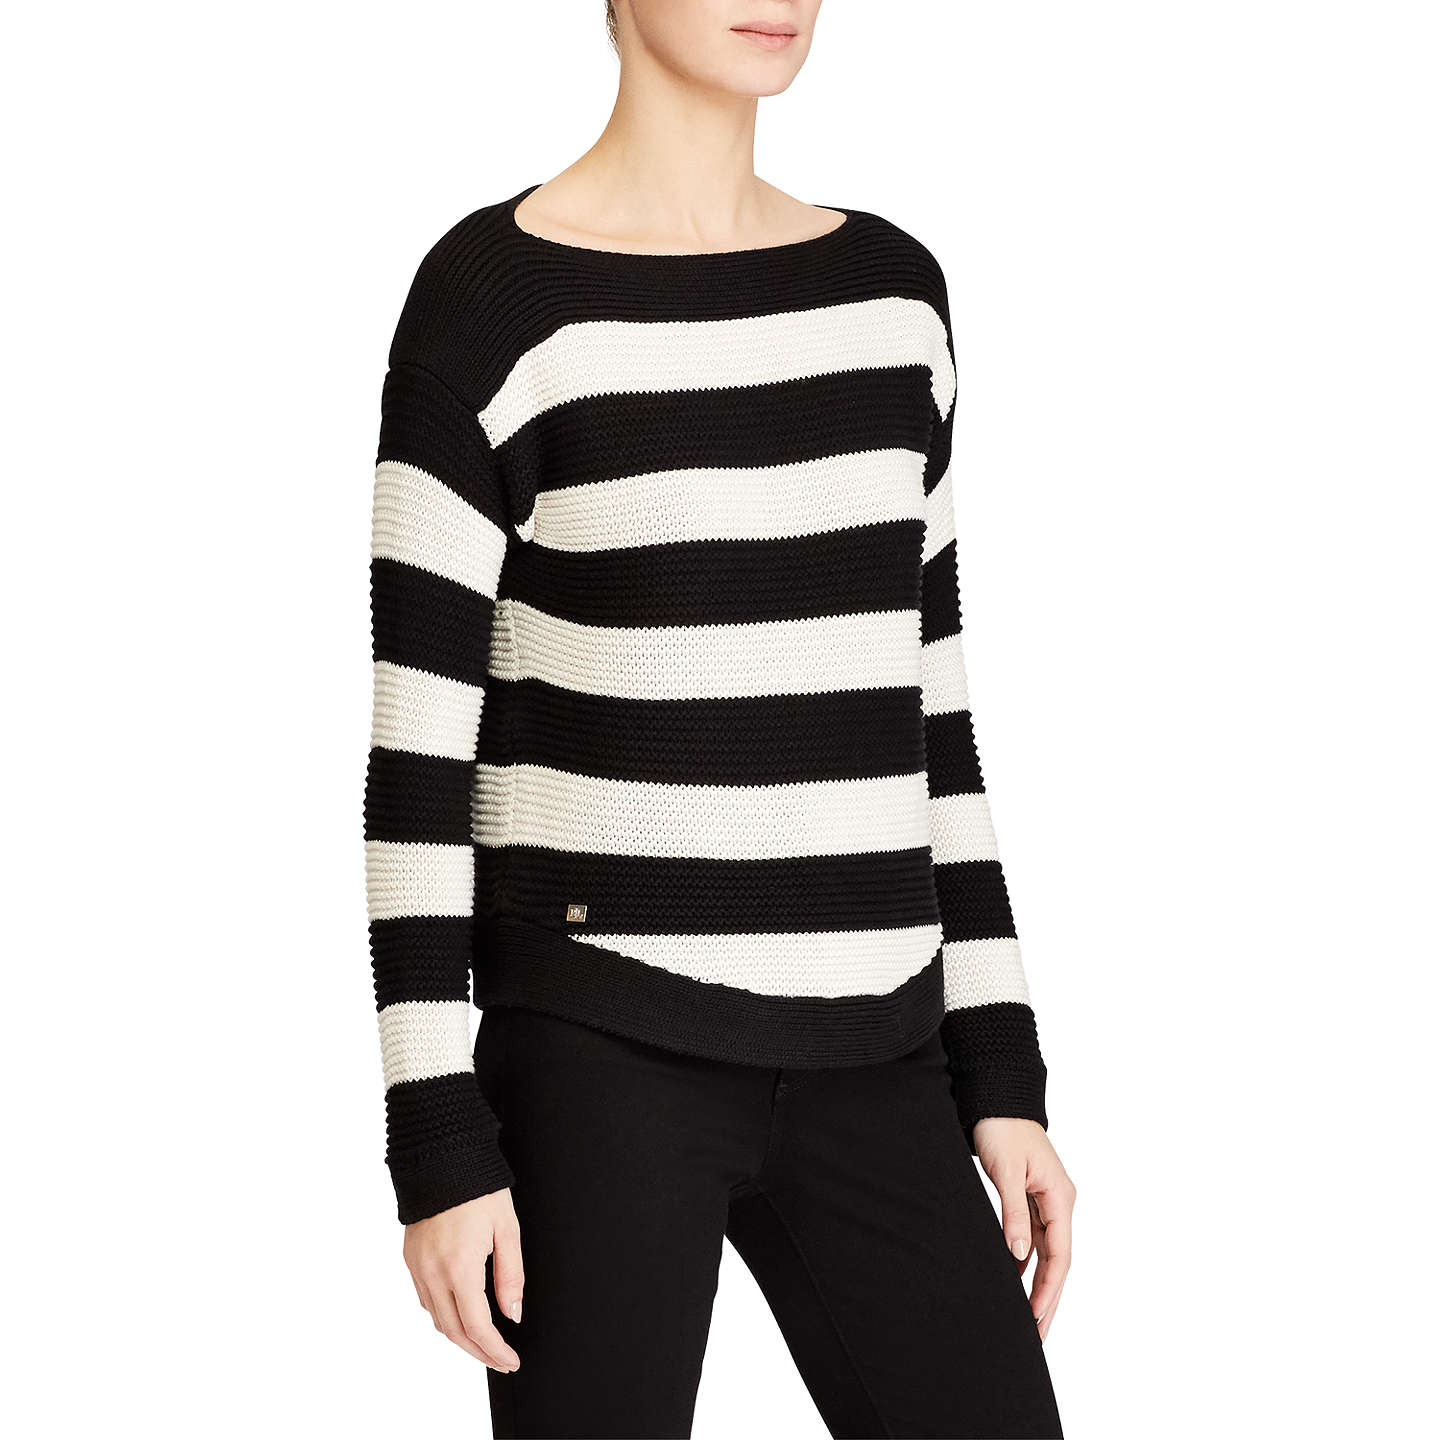 BuyLauren Ralph Lauren Vadrian Stripe Jumper, Polo Black/Mascarpone Cream, S Online at johnlewis.com